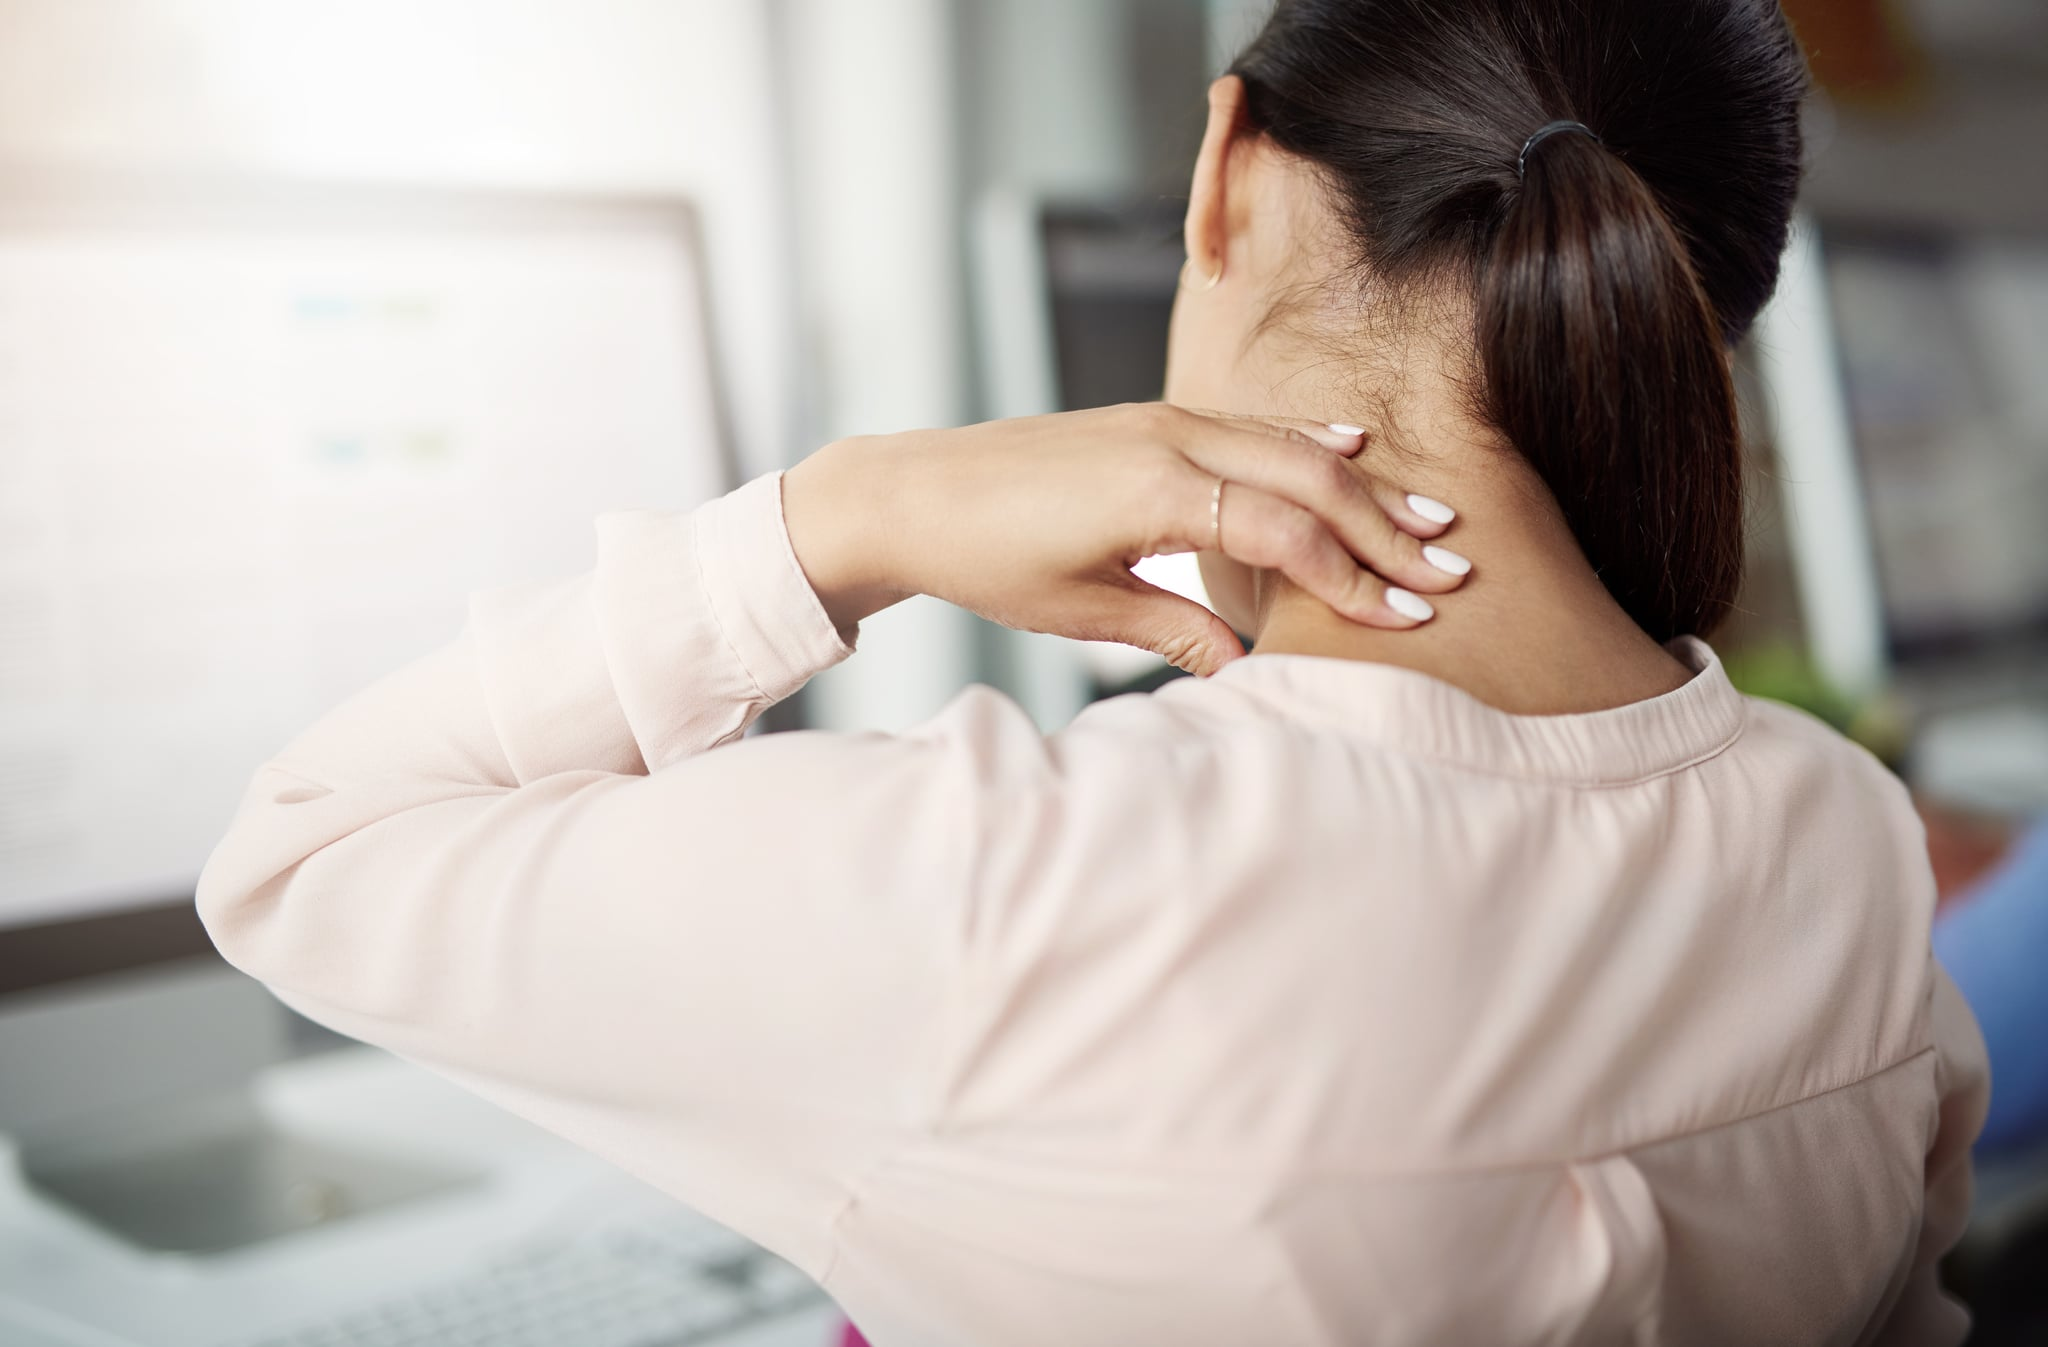 Rearview shot of a young businesswoman experiencing neck pain while working at her desk in a modern office